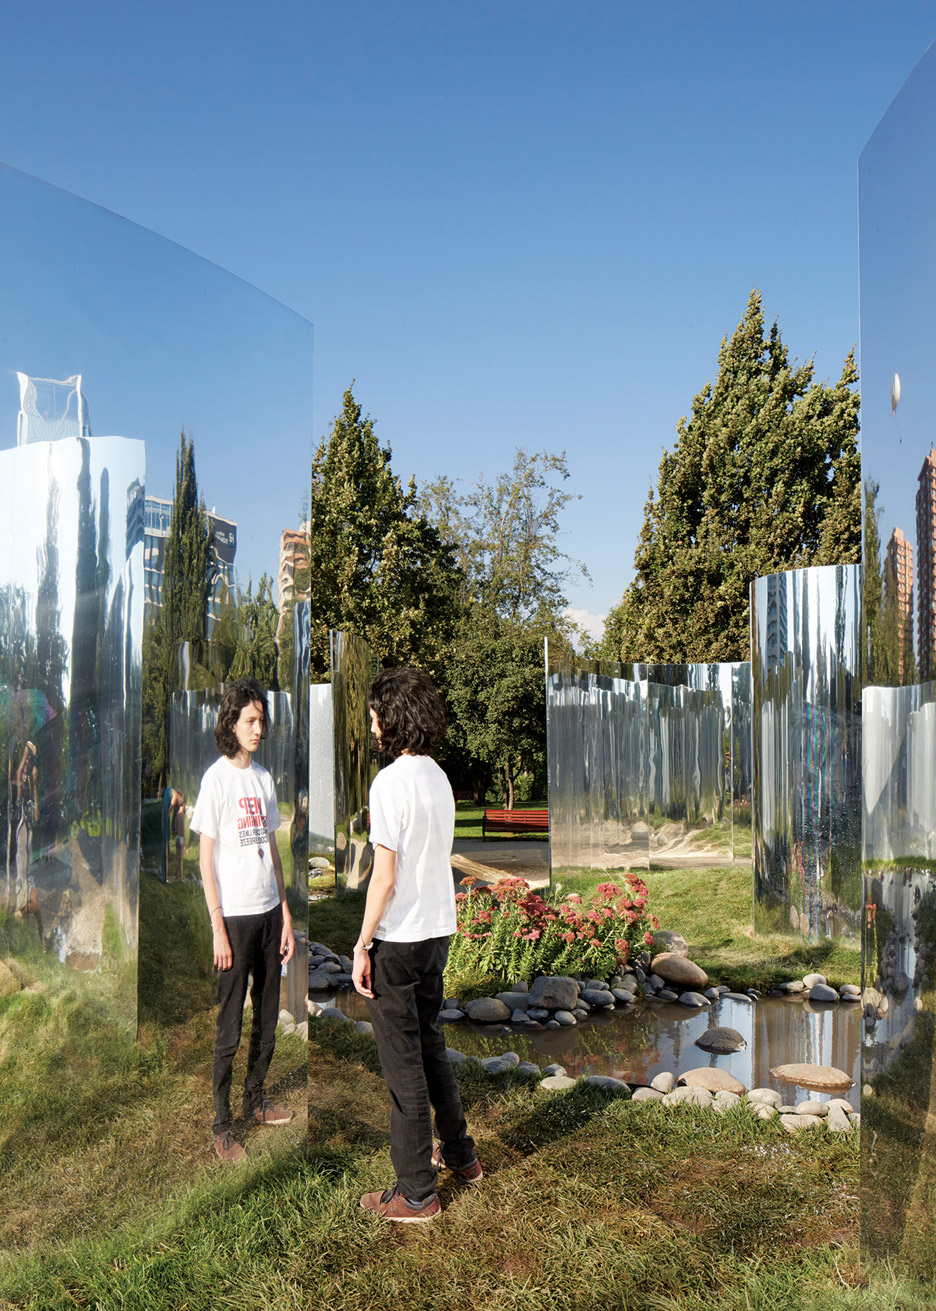 yap-constructo-6-your-reflection-guillermo-hevia-garcia-nicolas-urzua-pavilion-architecture-installation-mirrors-santiago-chile_dezeen_936_15